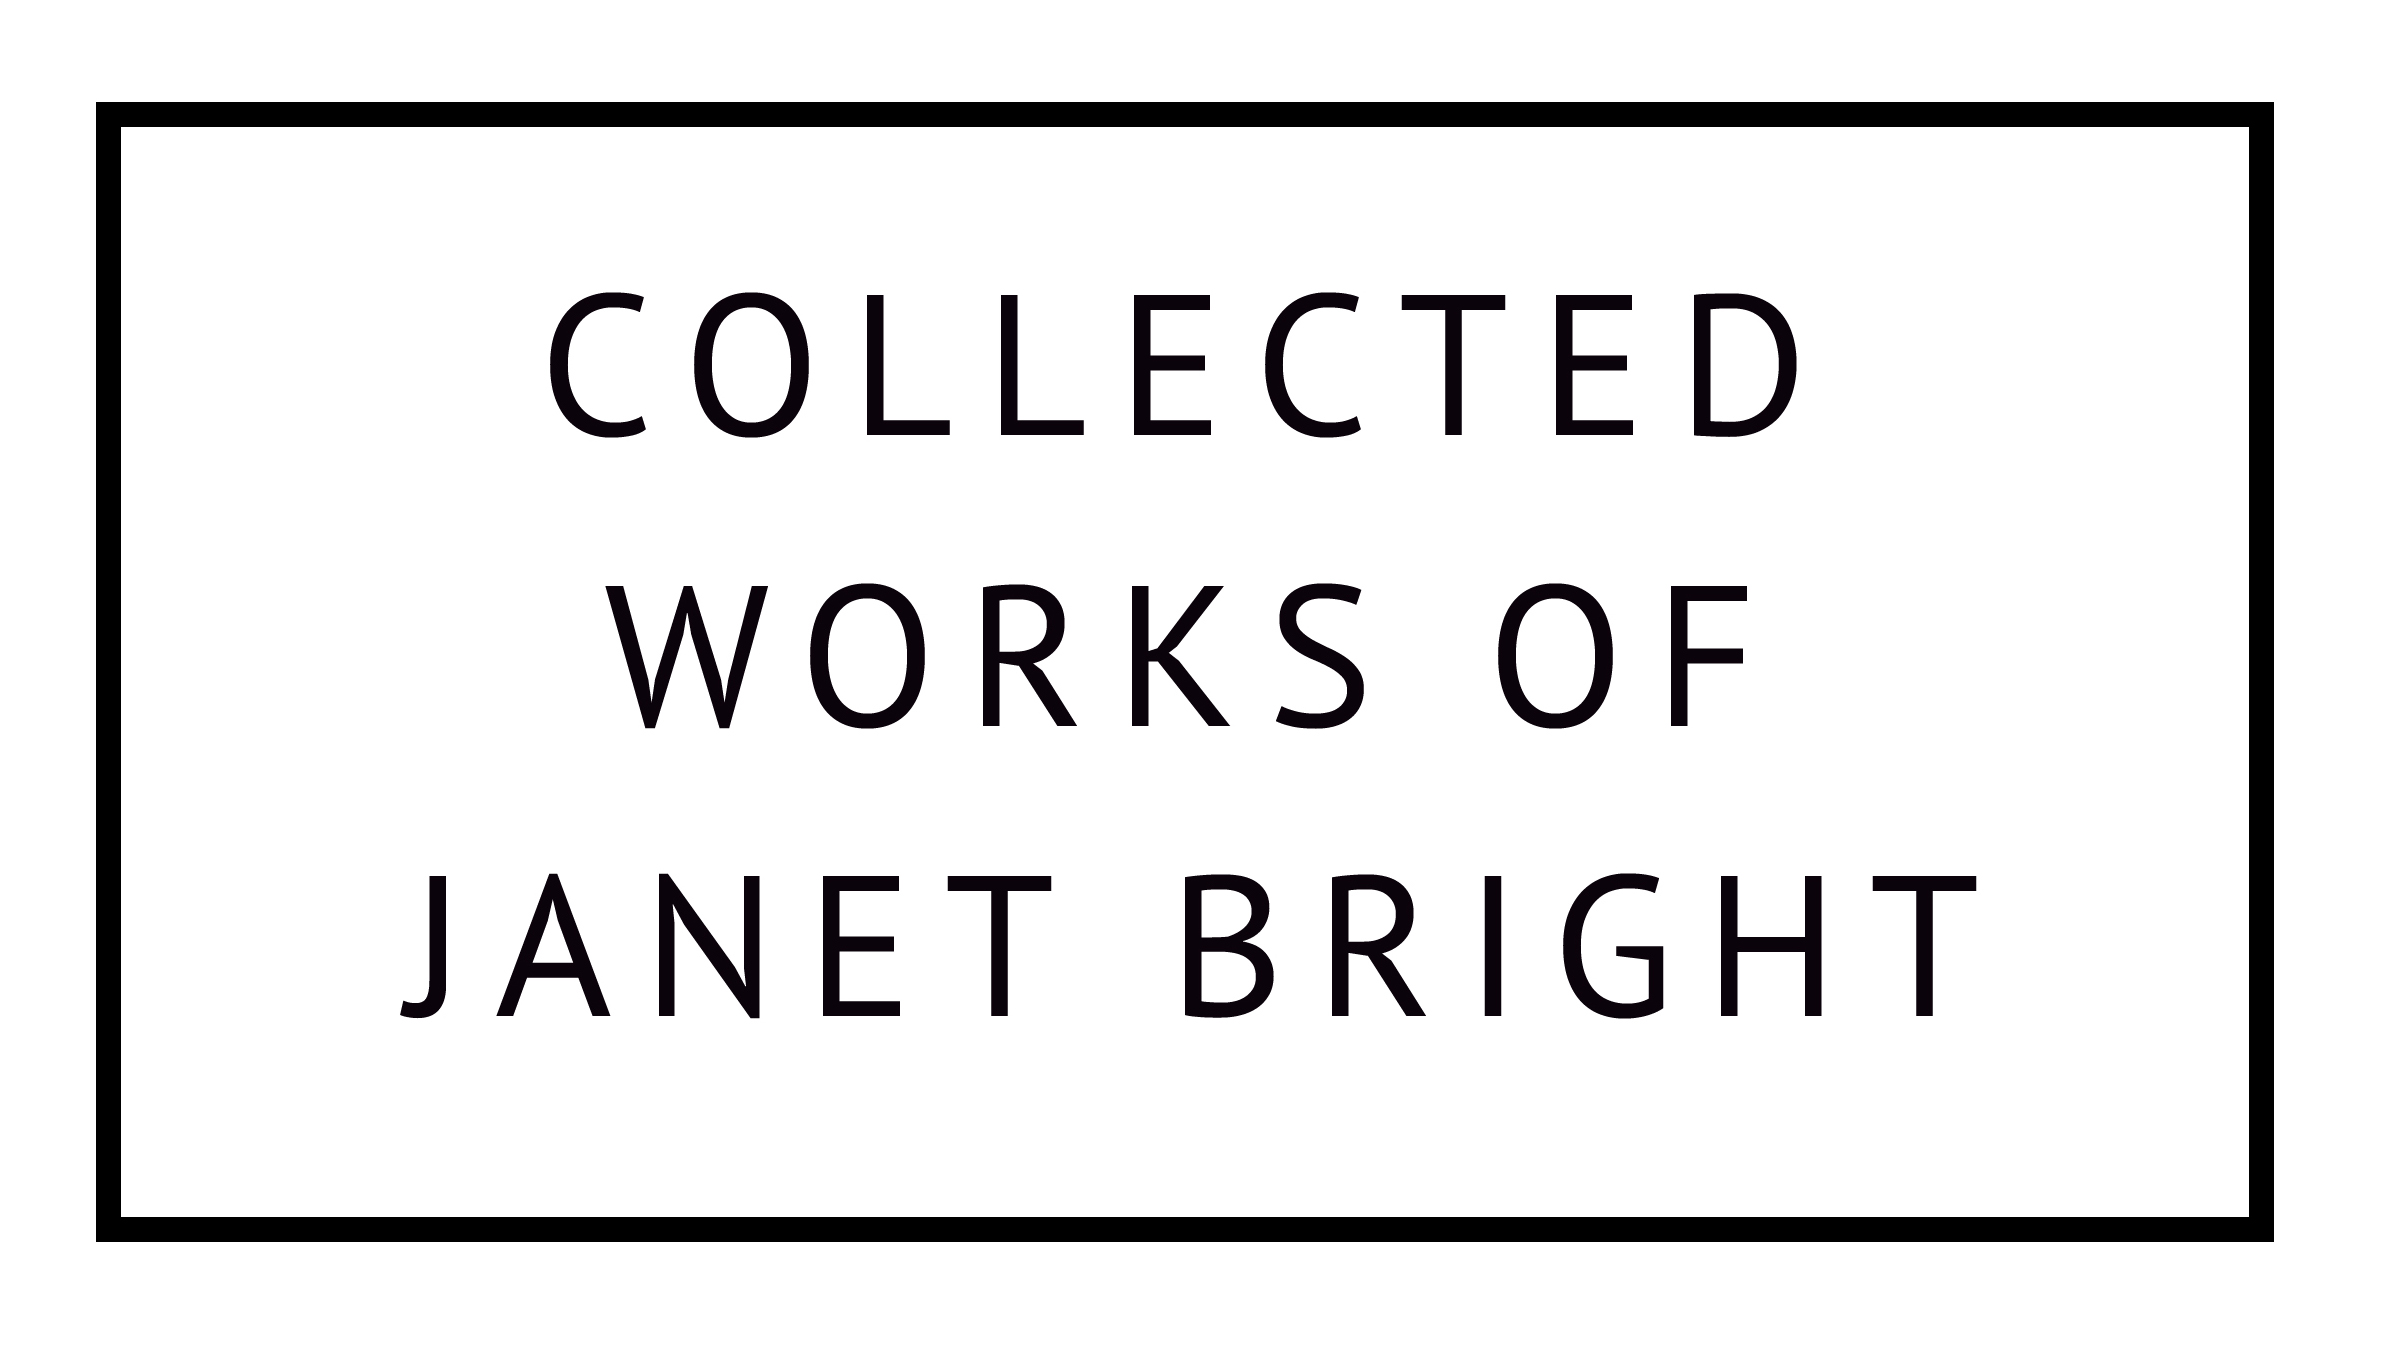 collected works of janet bright purchase work buying canadian art janet bright